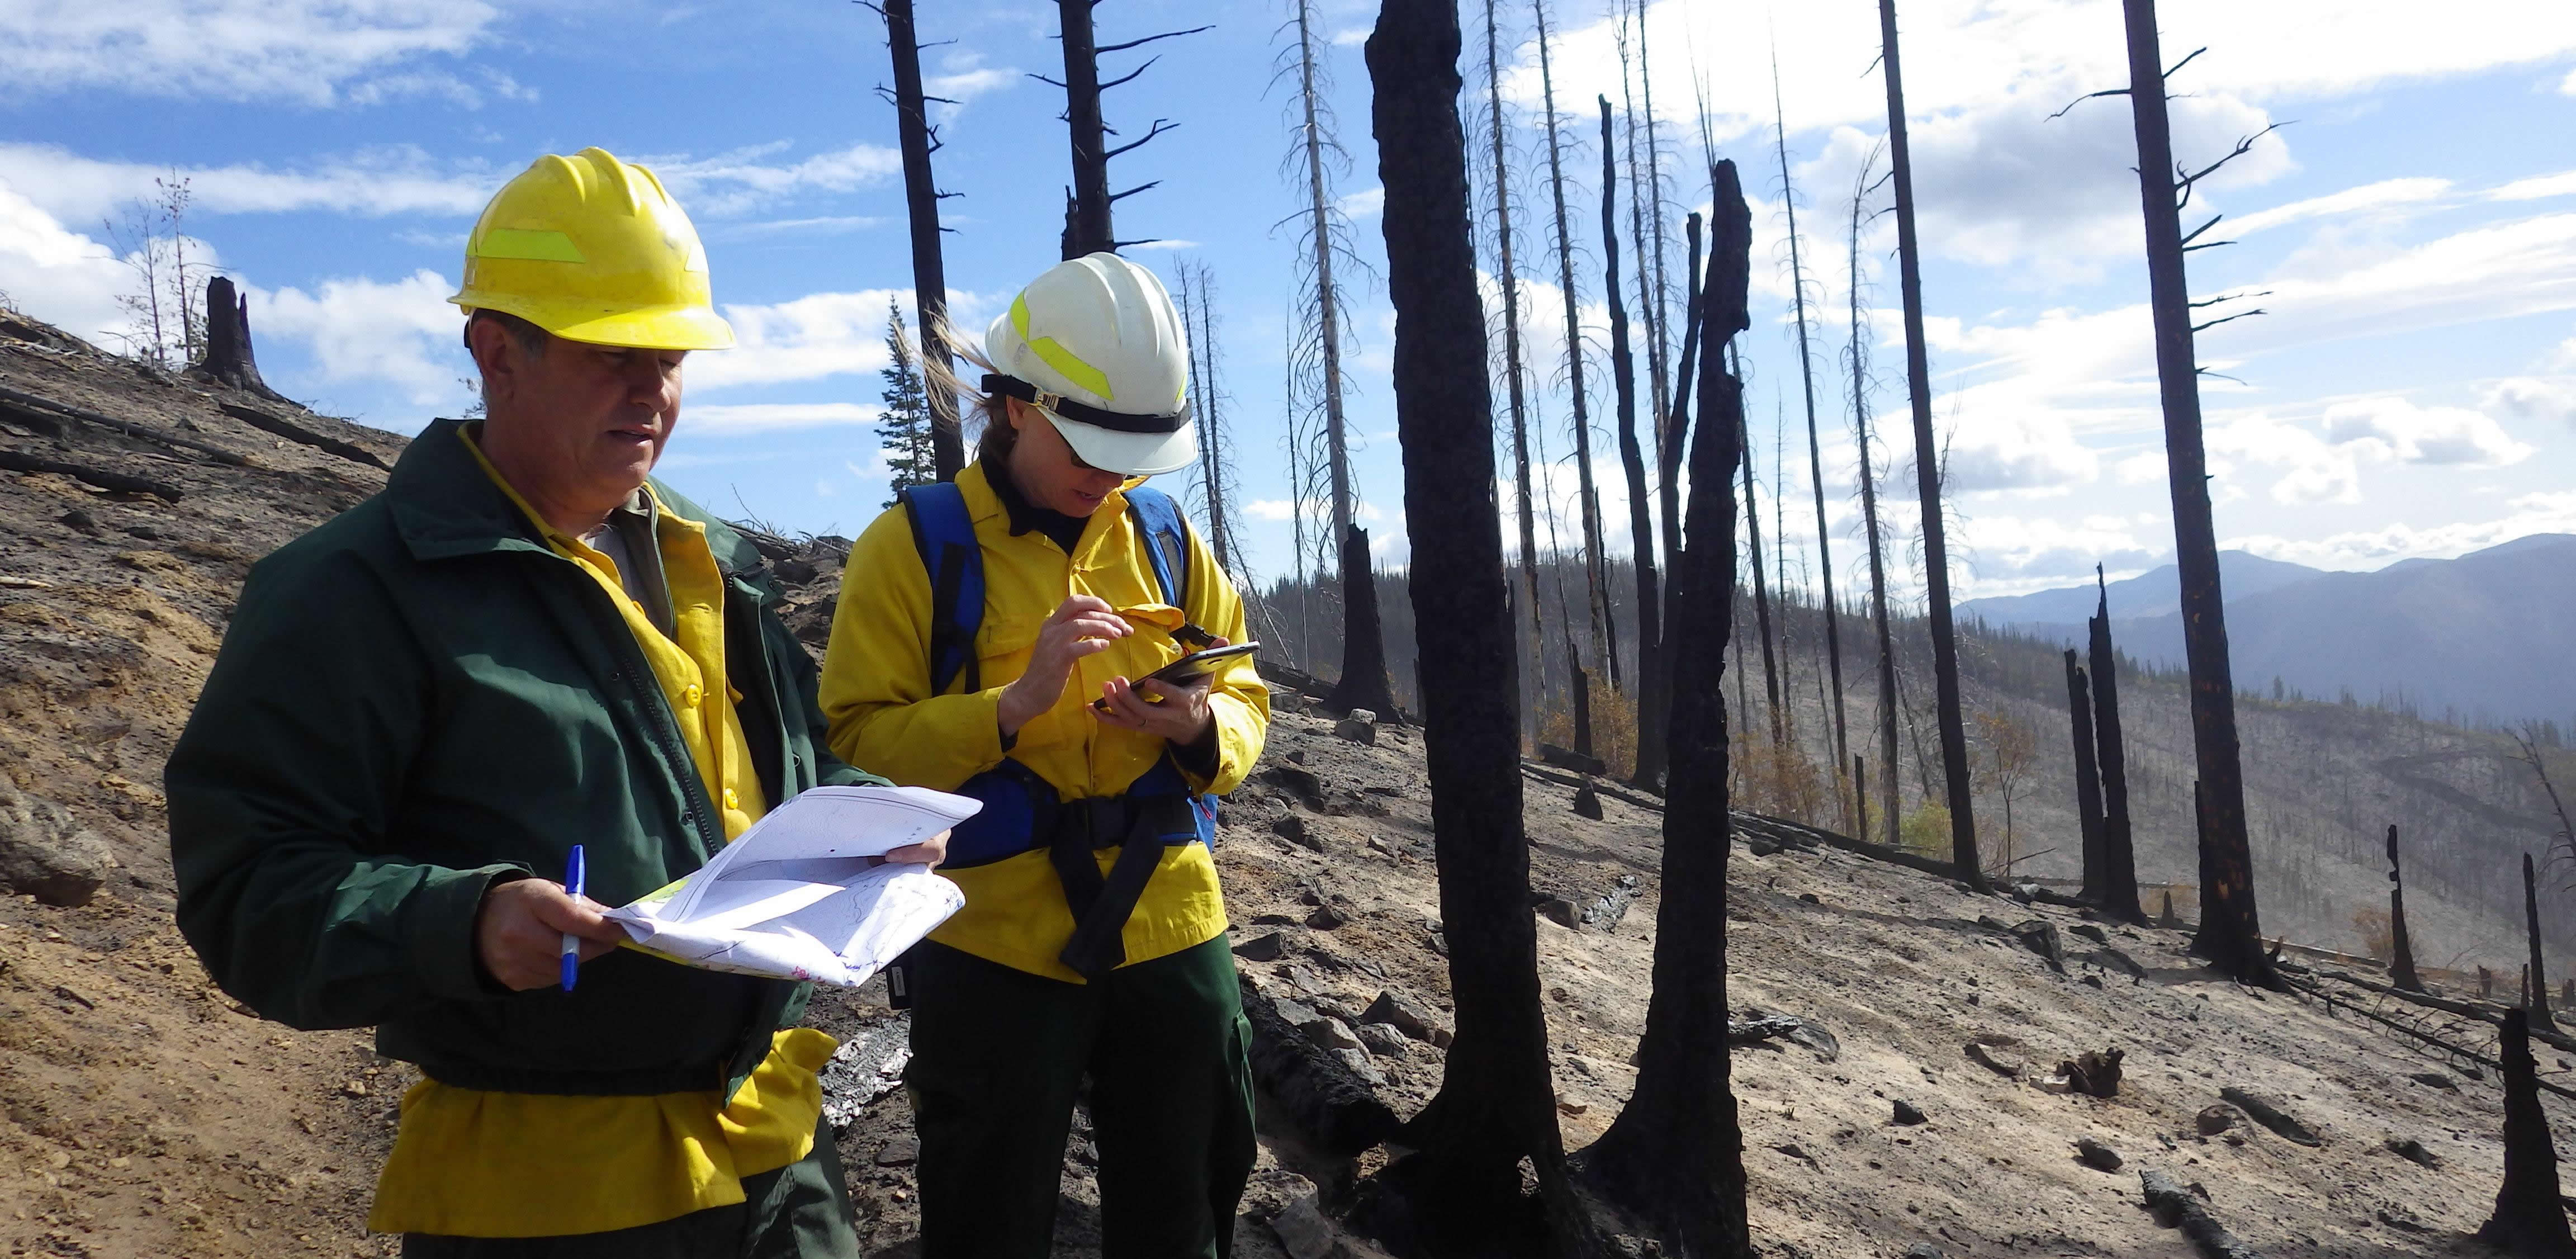 Two Forest Service employees working in an area long after a wildfire moved through.